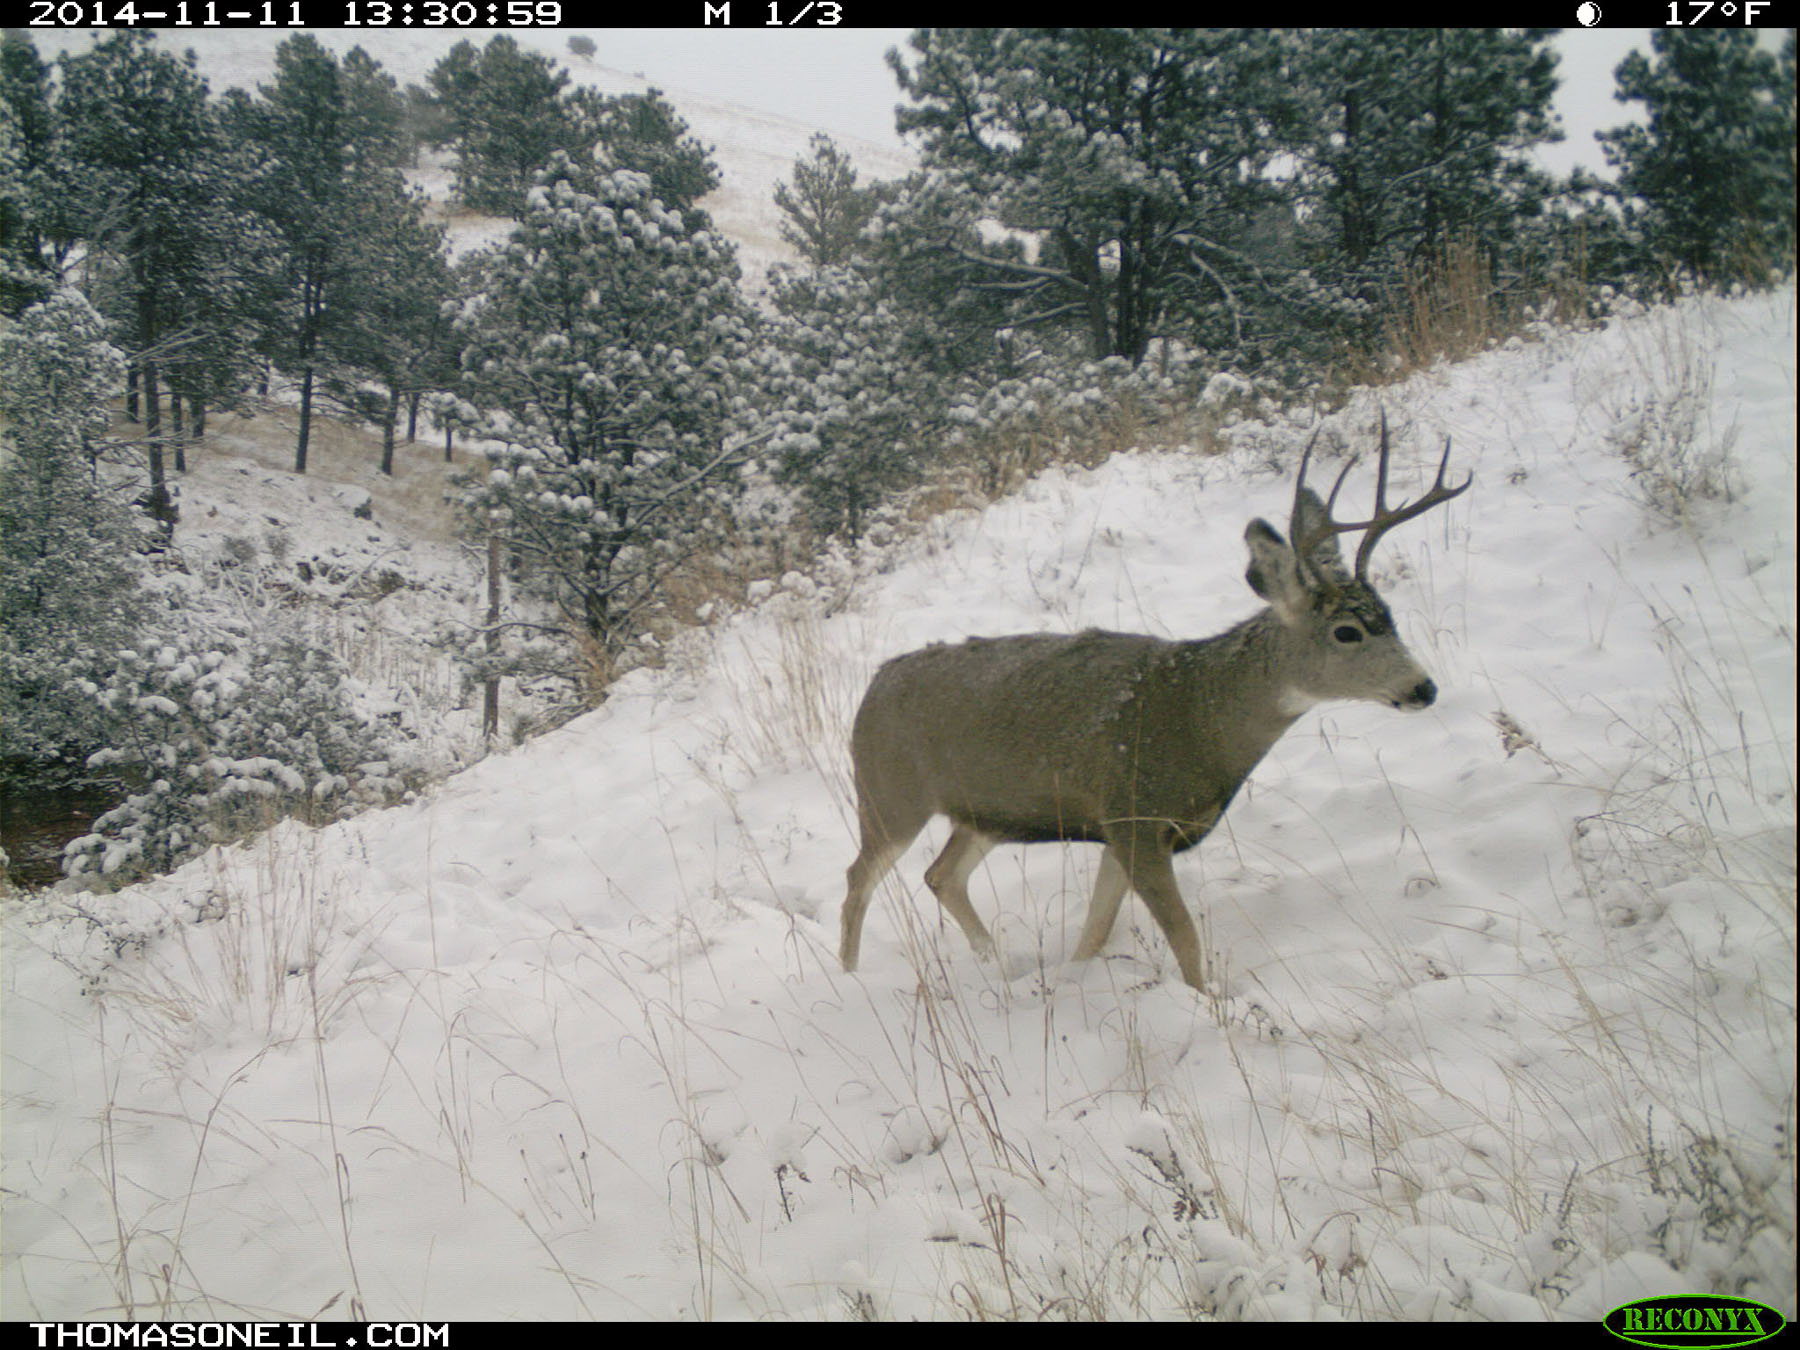 Deer on trailcam, Custer State Park, November 2014.  Click for next photo.